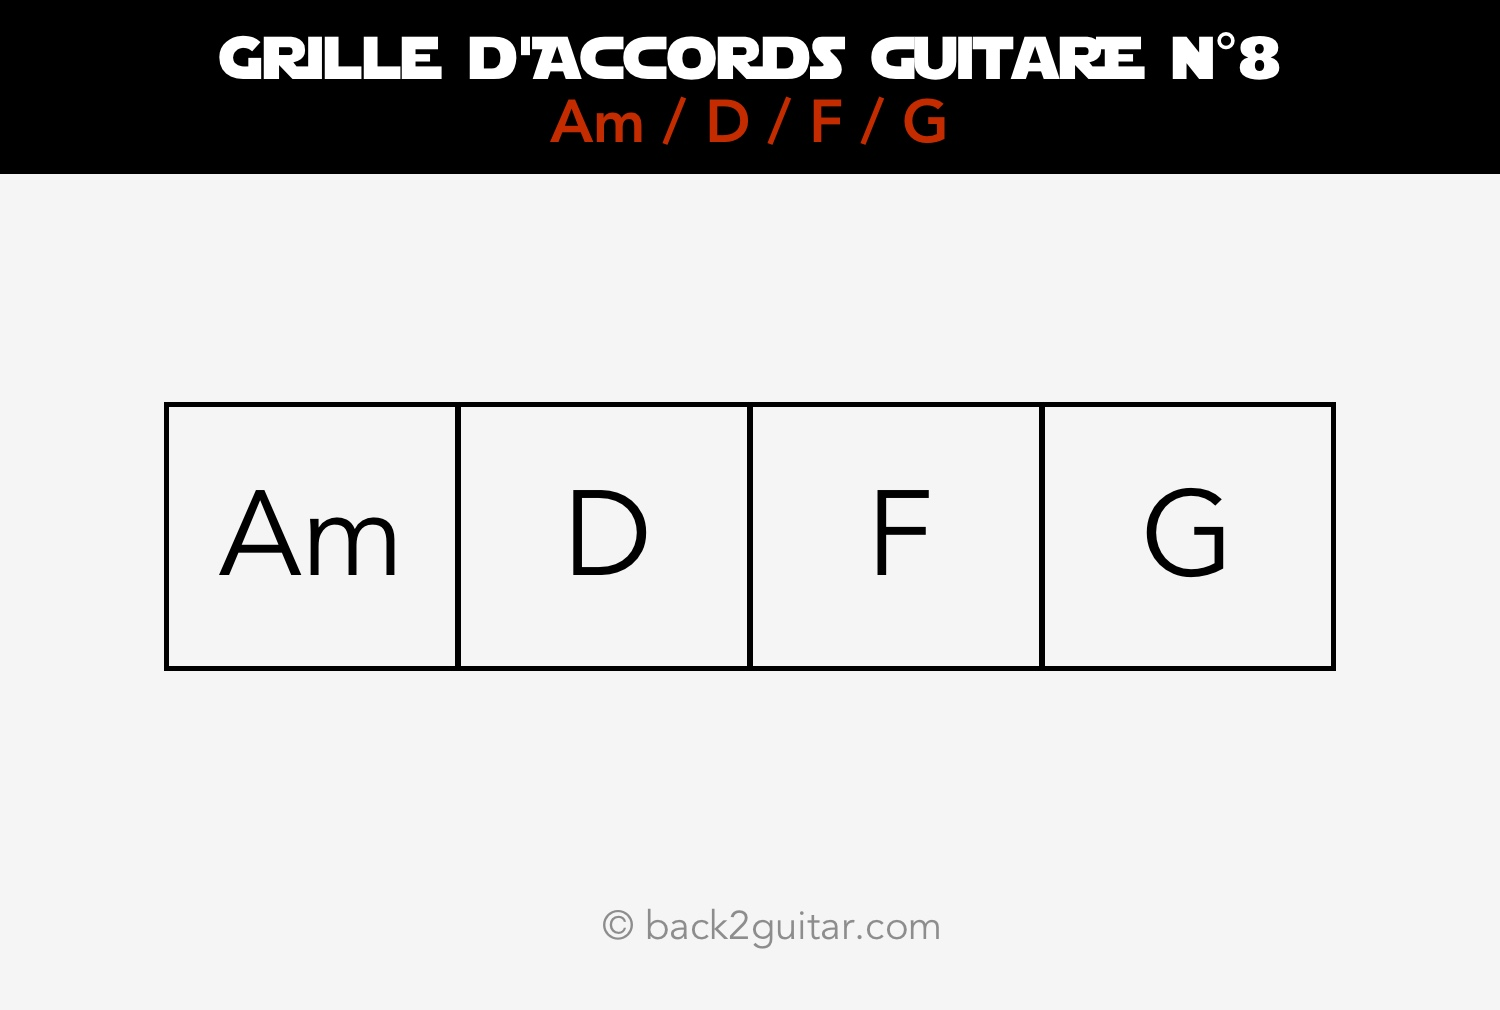 grille accords guitare 8 am d f g